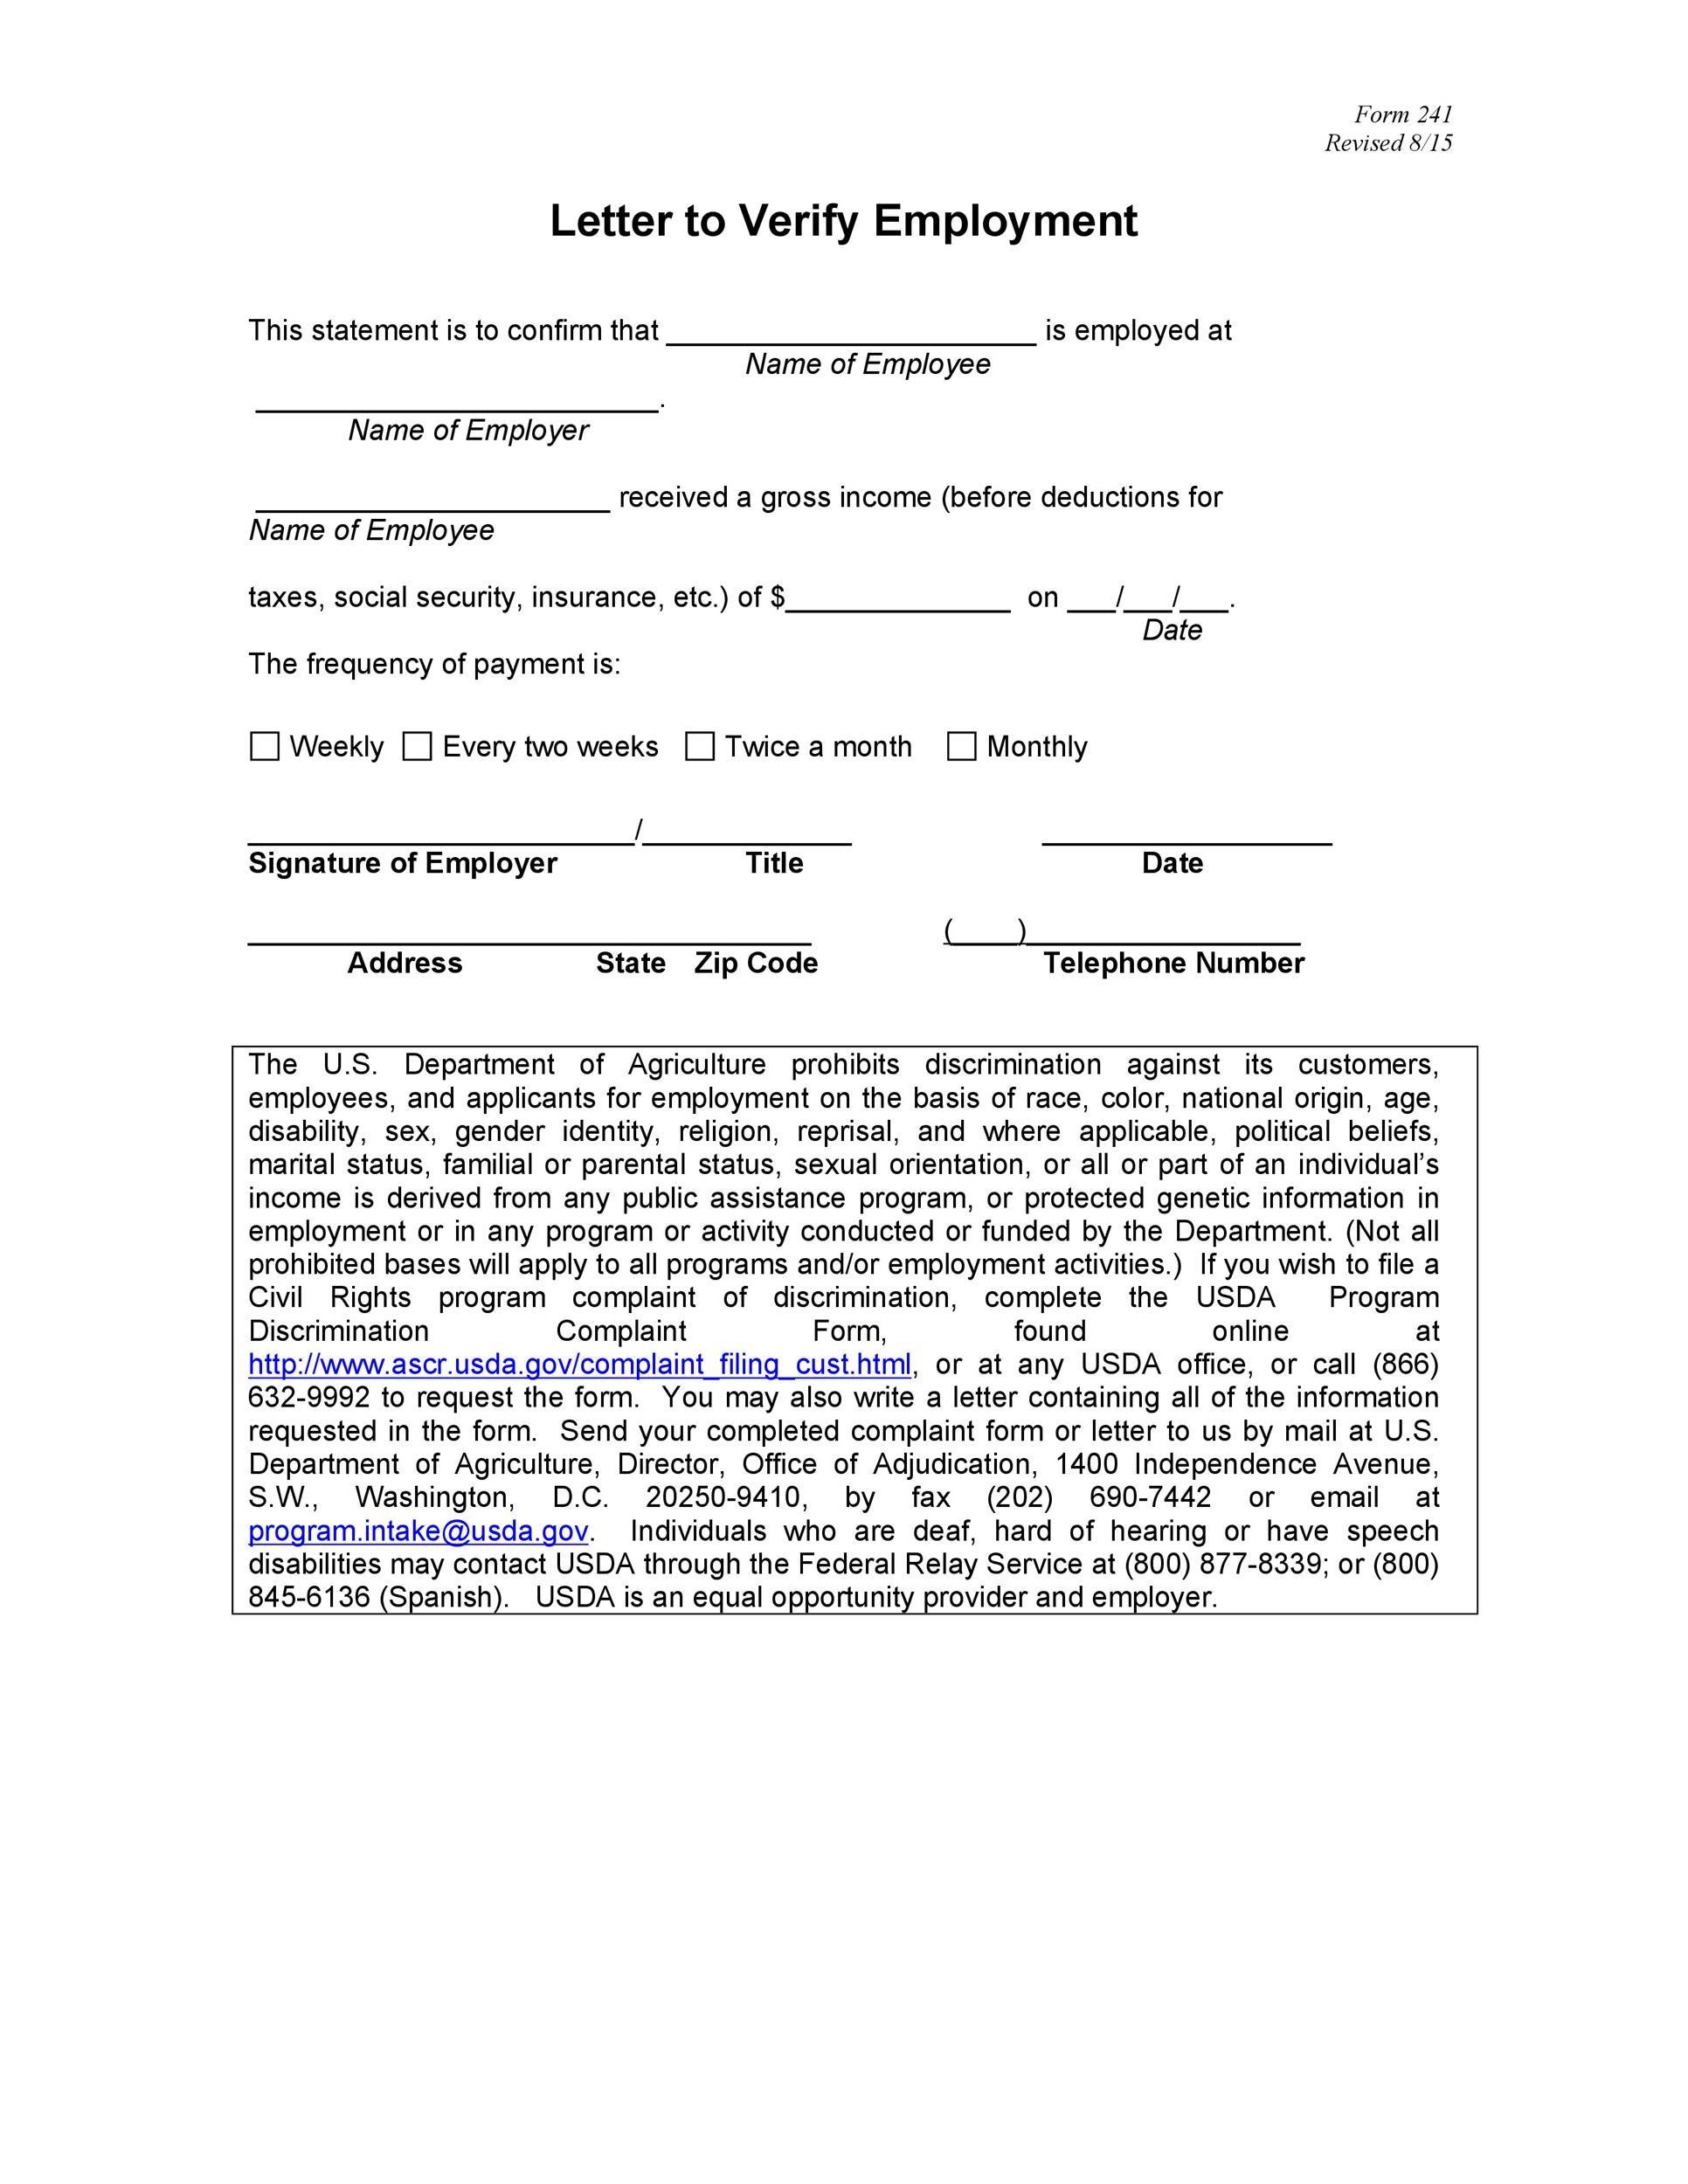 verification employment letter - Ozilalmanoof - Job Verification Letter